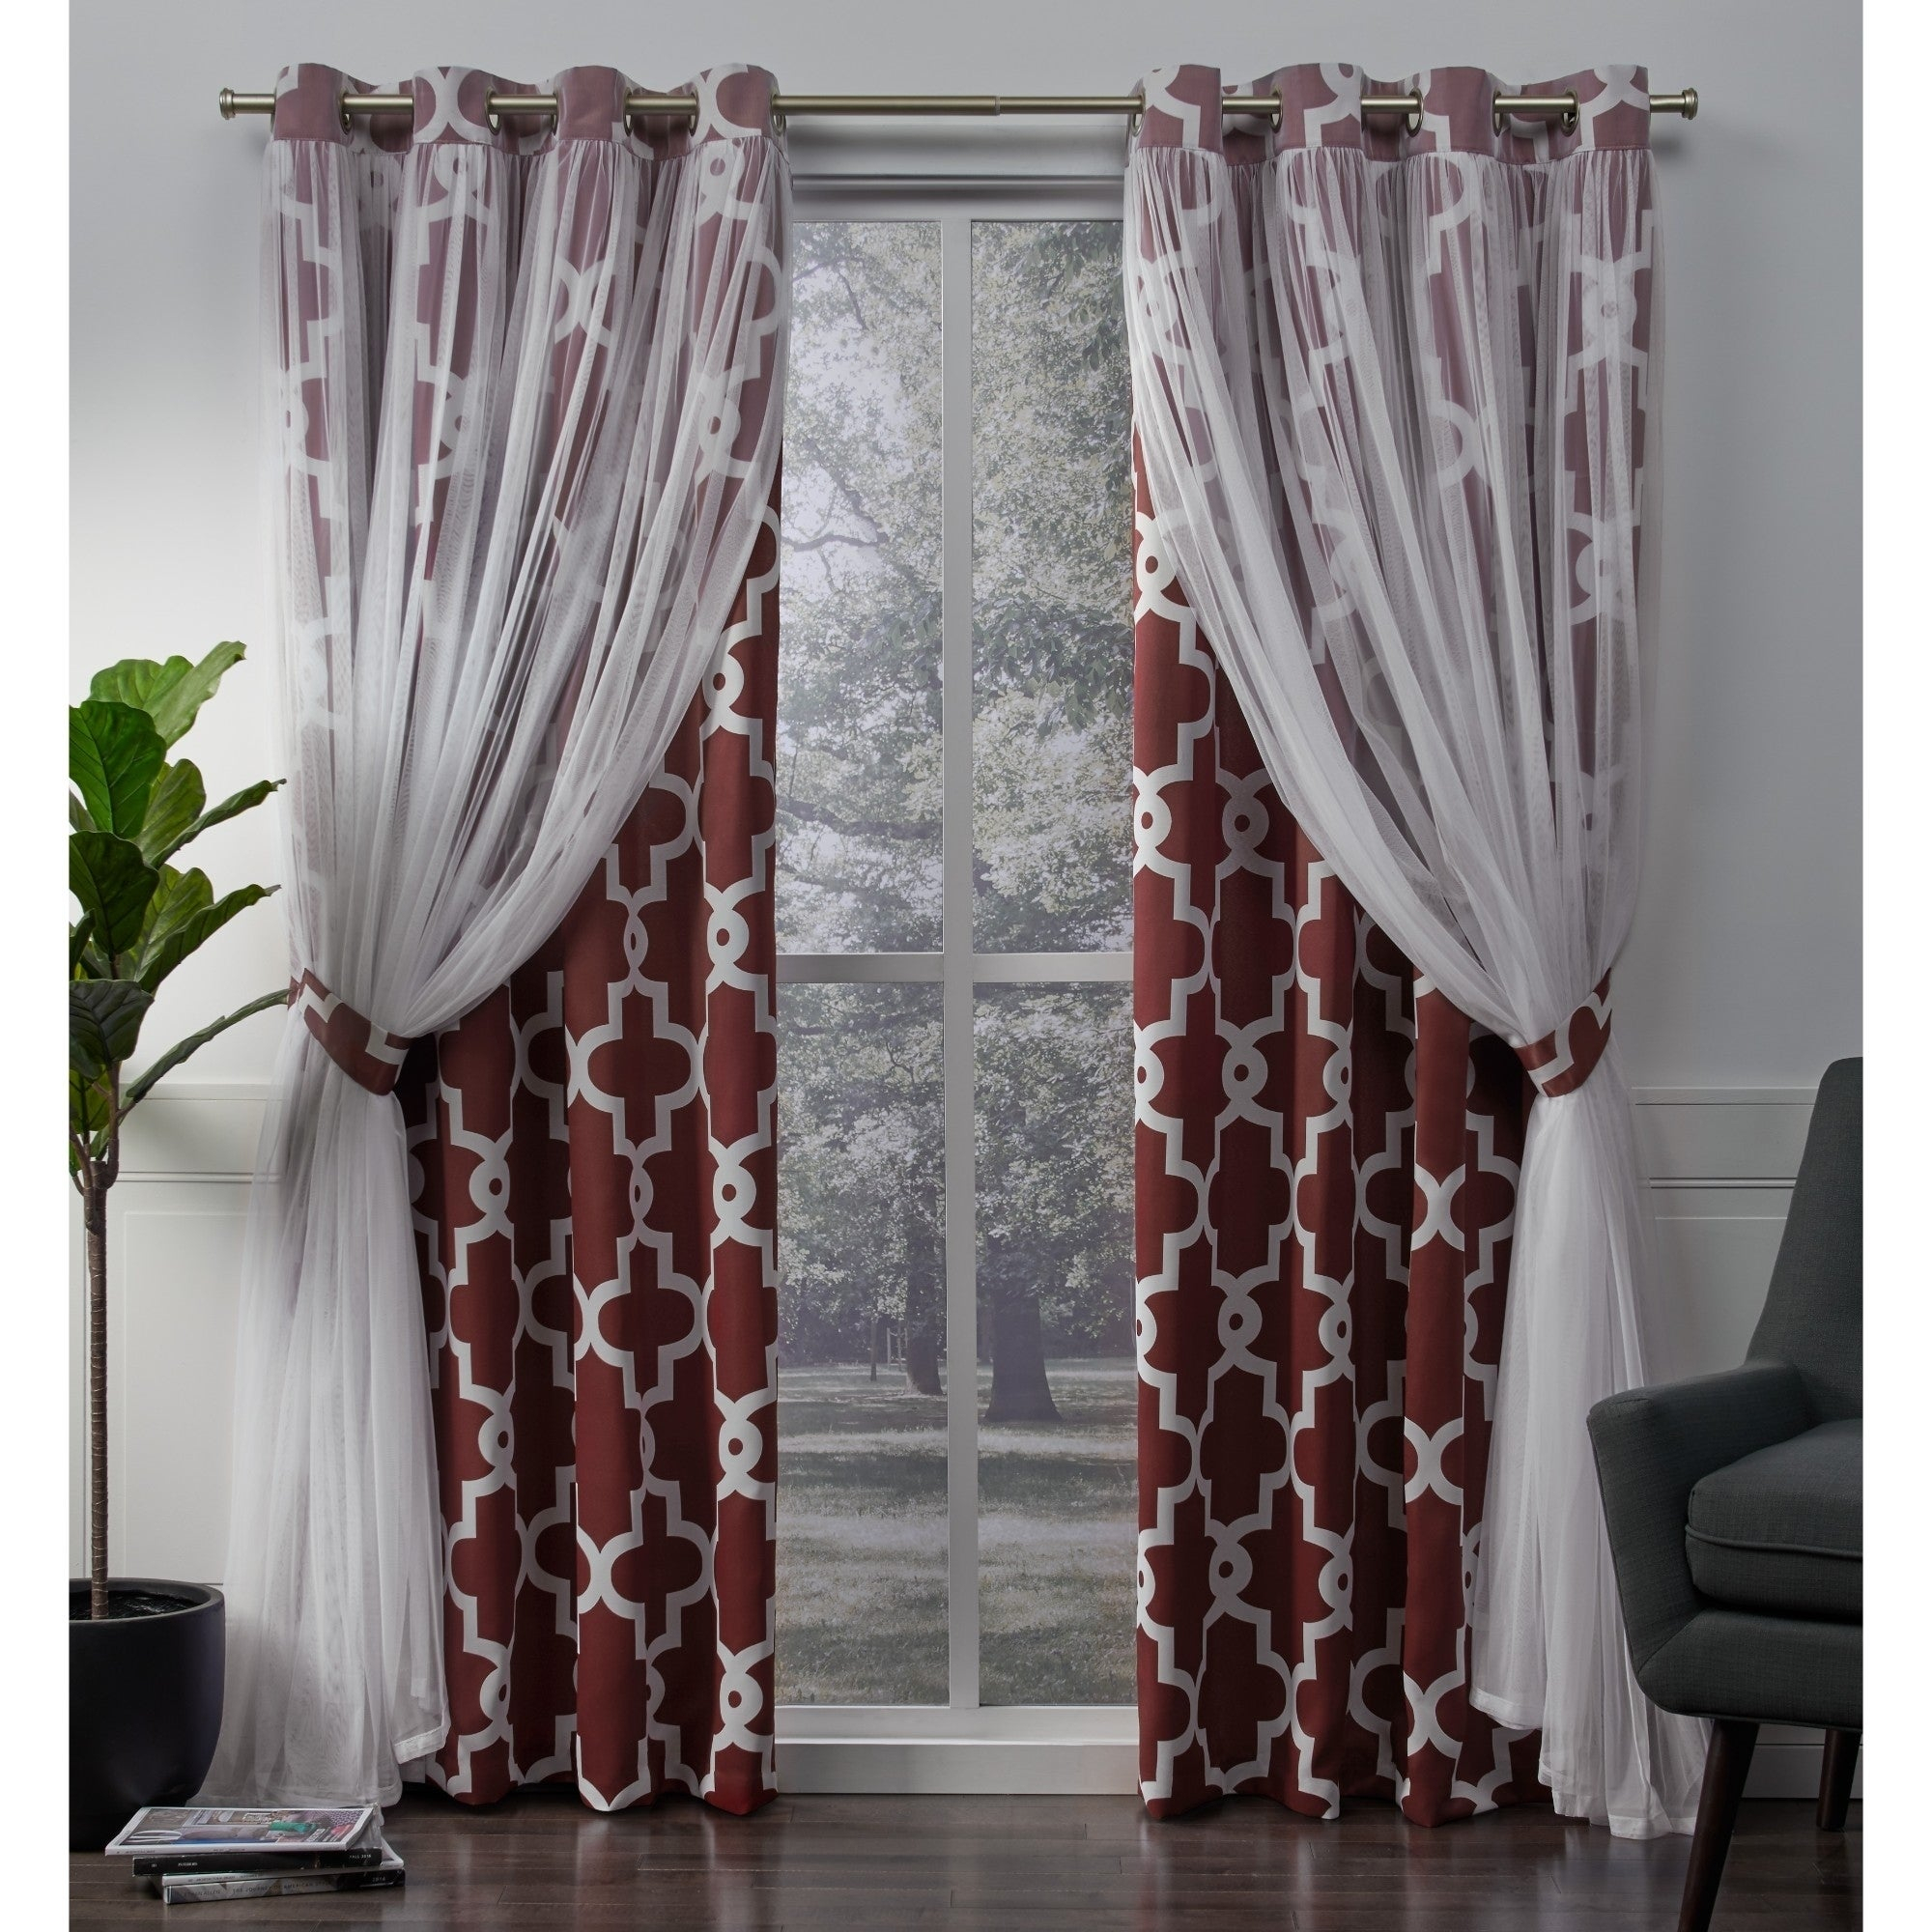 Details About Ati Home Alegra Thermal Woven Blackout Grommet Top Curtain In Woven Blackout Grommet Top Curtain Panel Pairs (View 4 of 30)